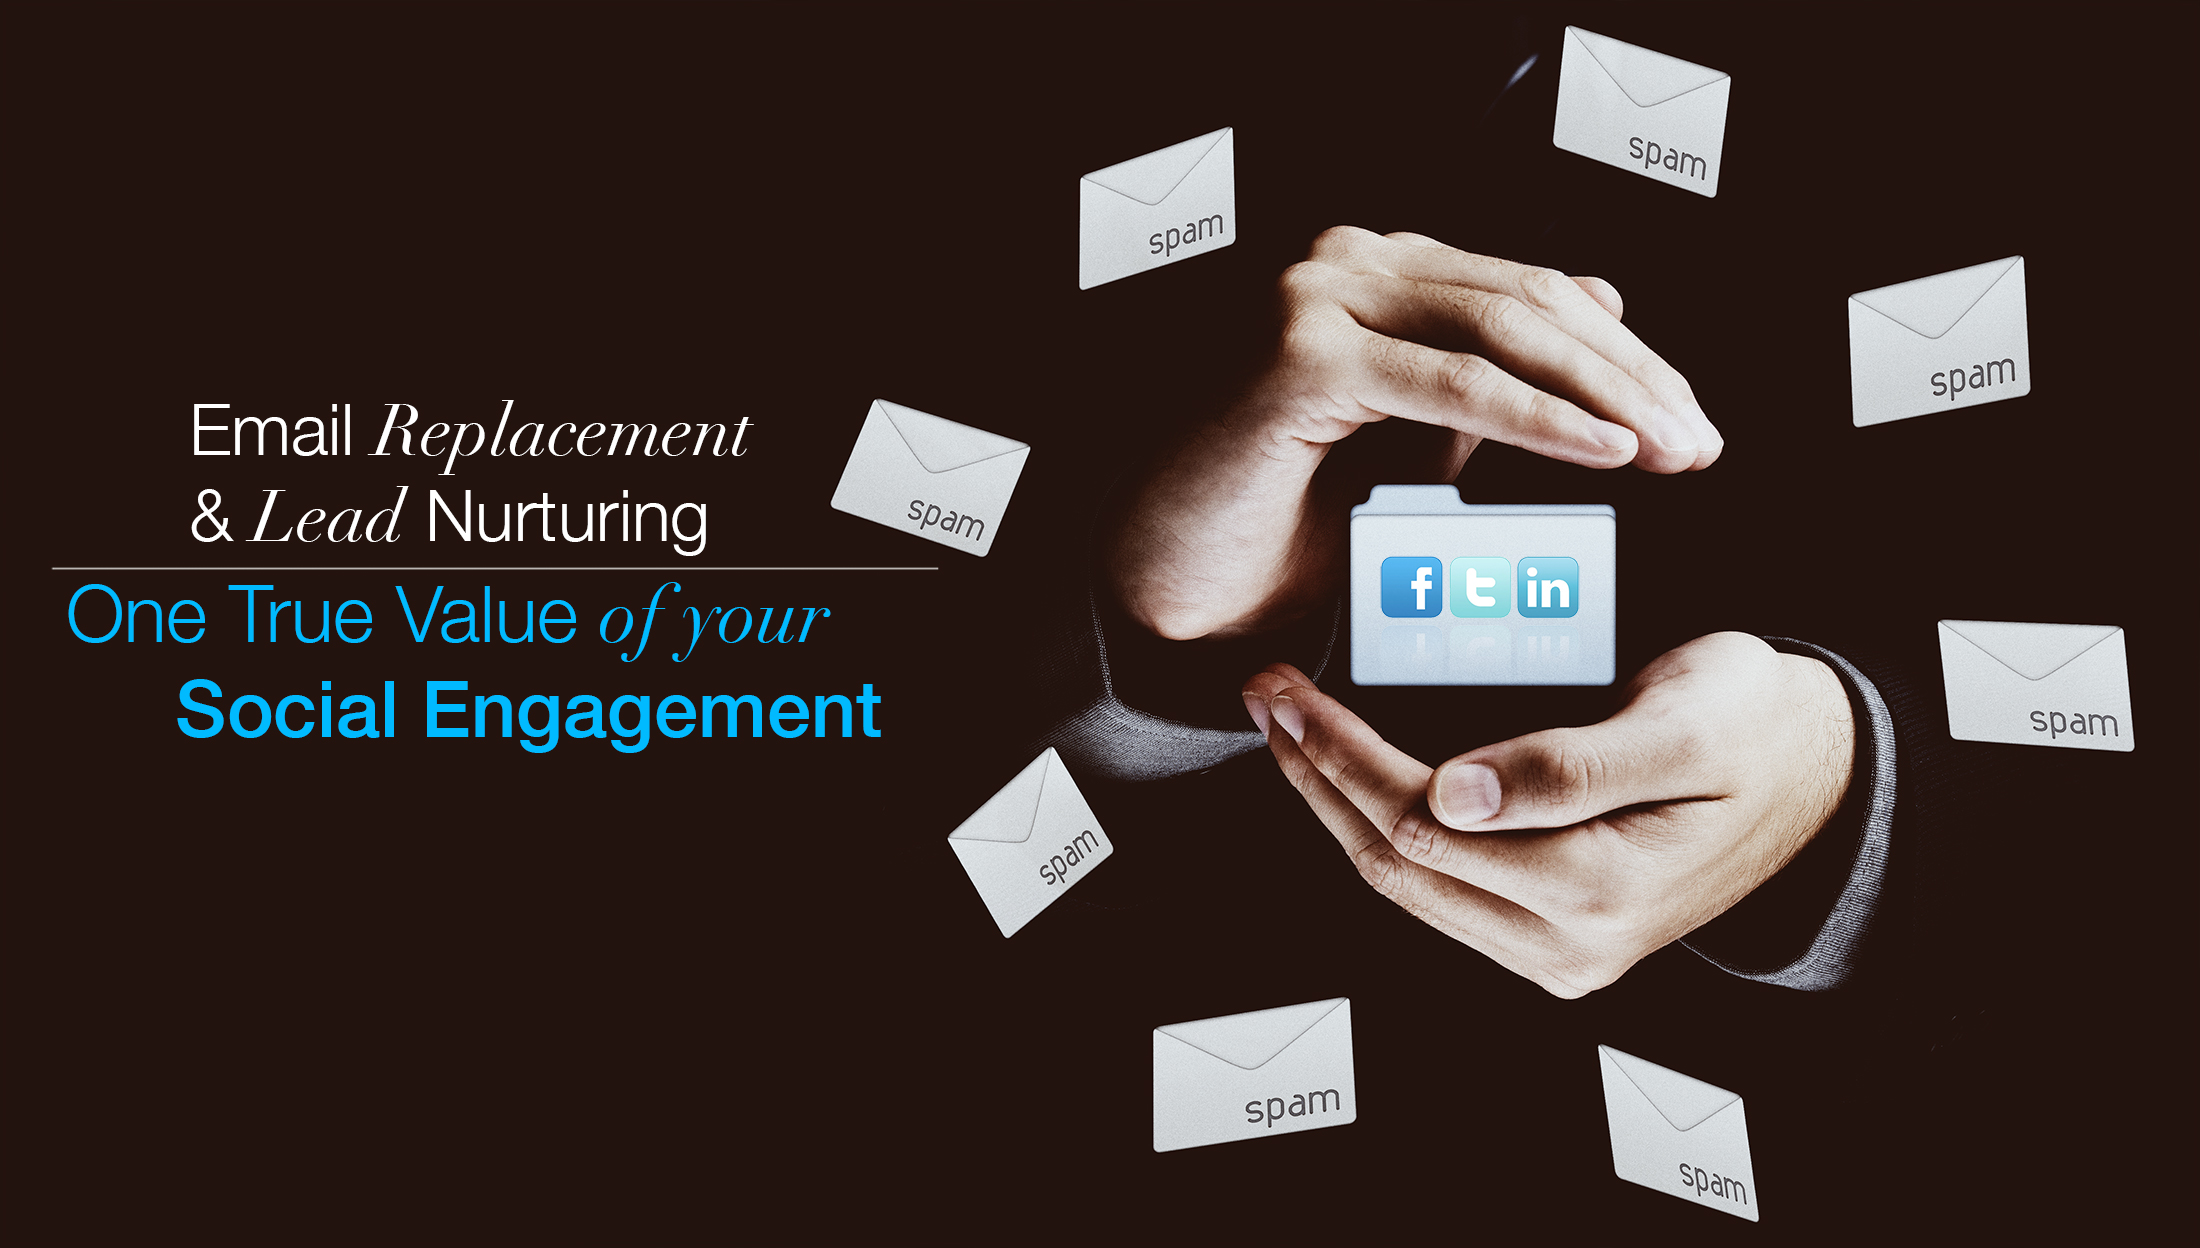 Email Replacement & Lead Nurturing: One True Value of Your Social Engagement